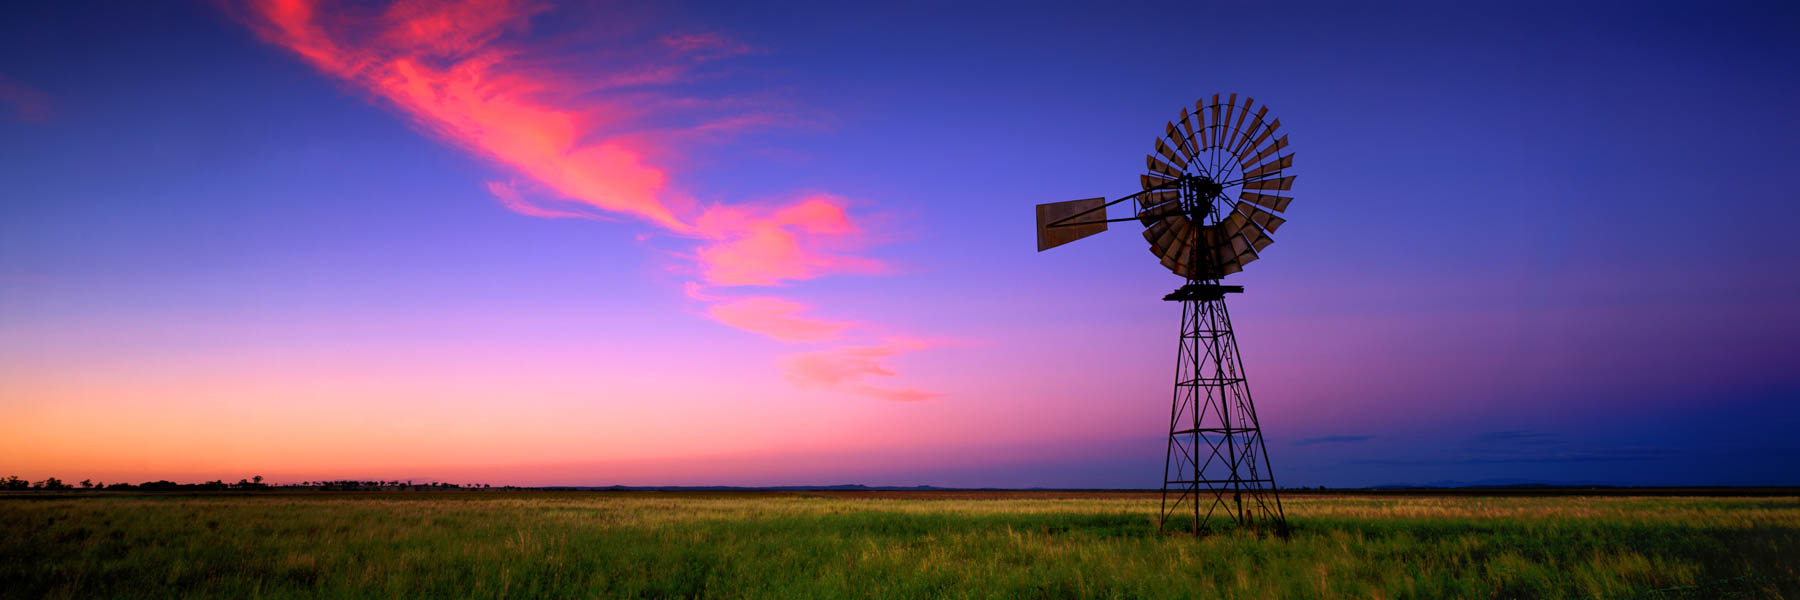 Windmill at sunset, Mullaley, western NSW, Australia.